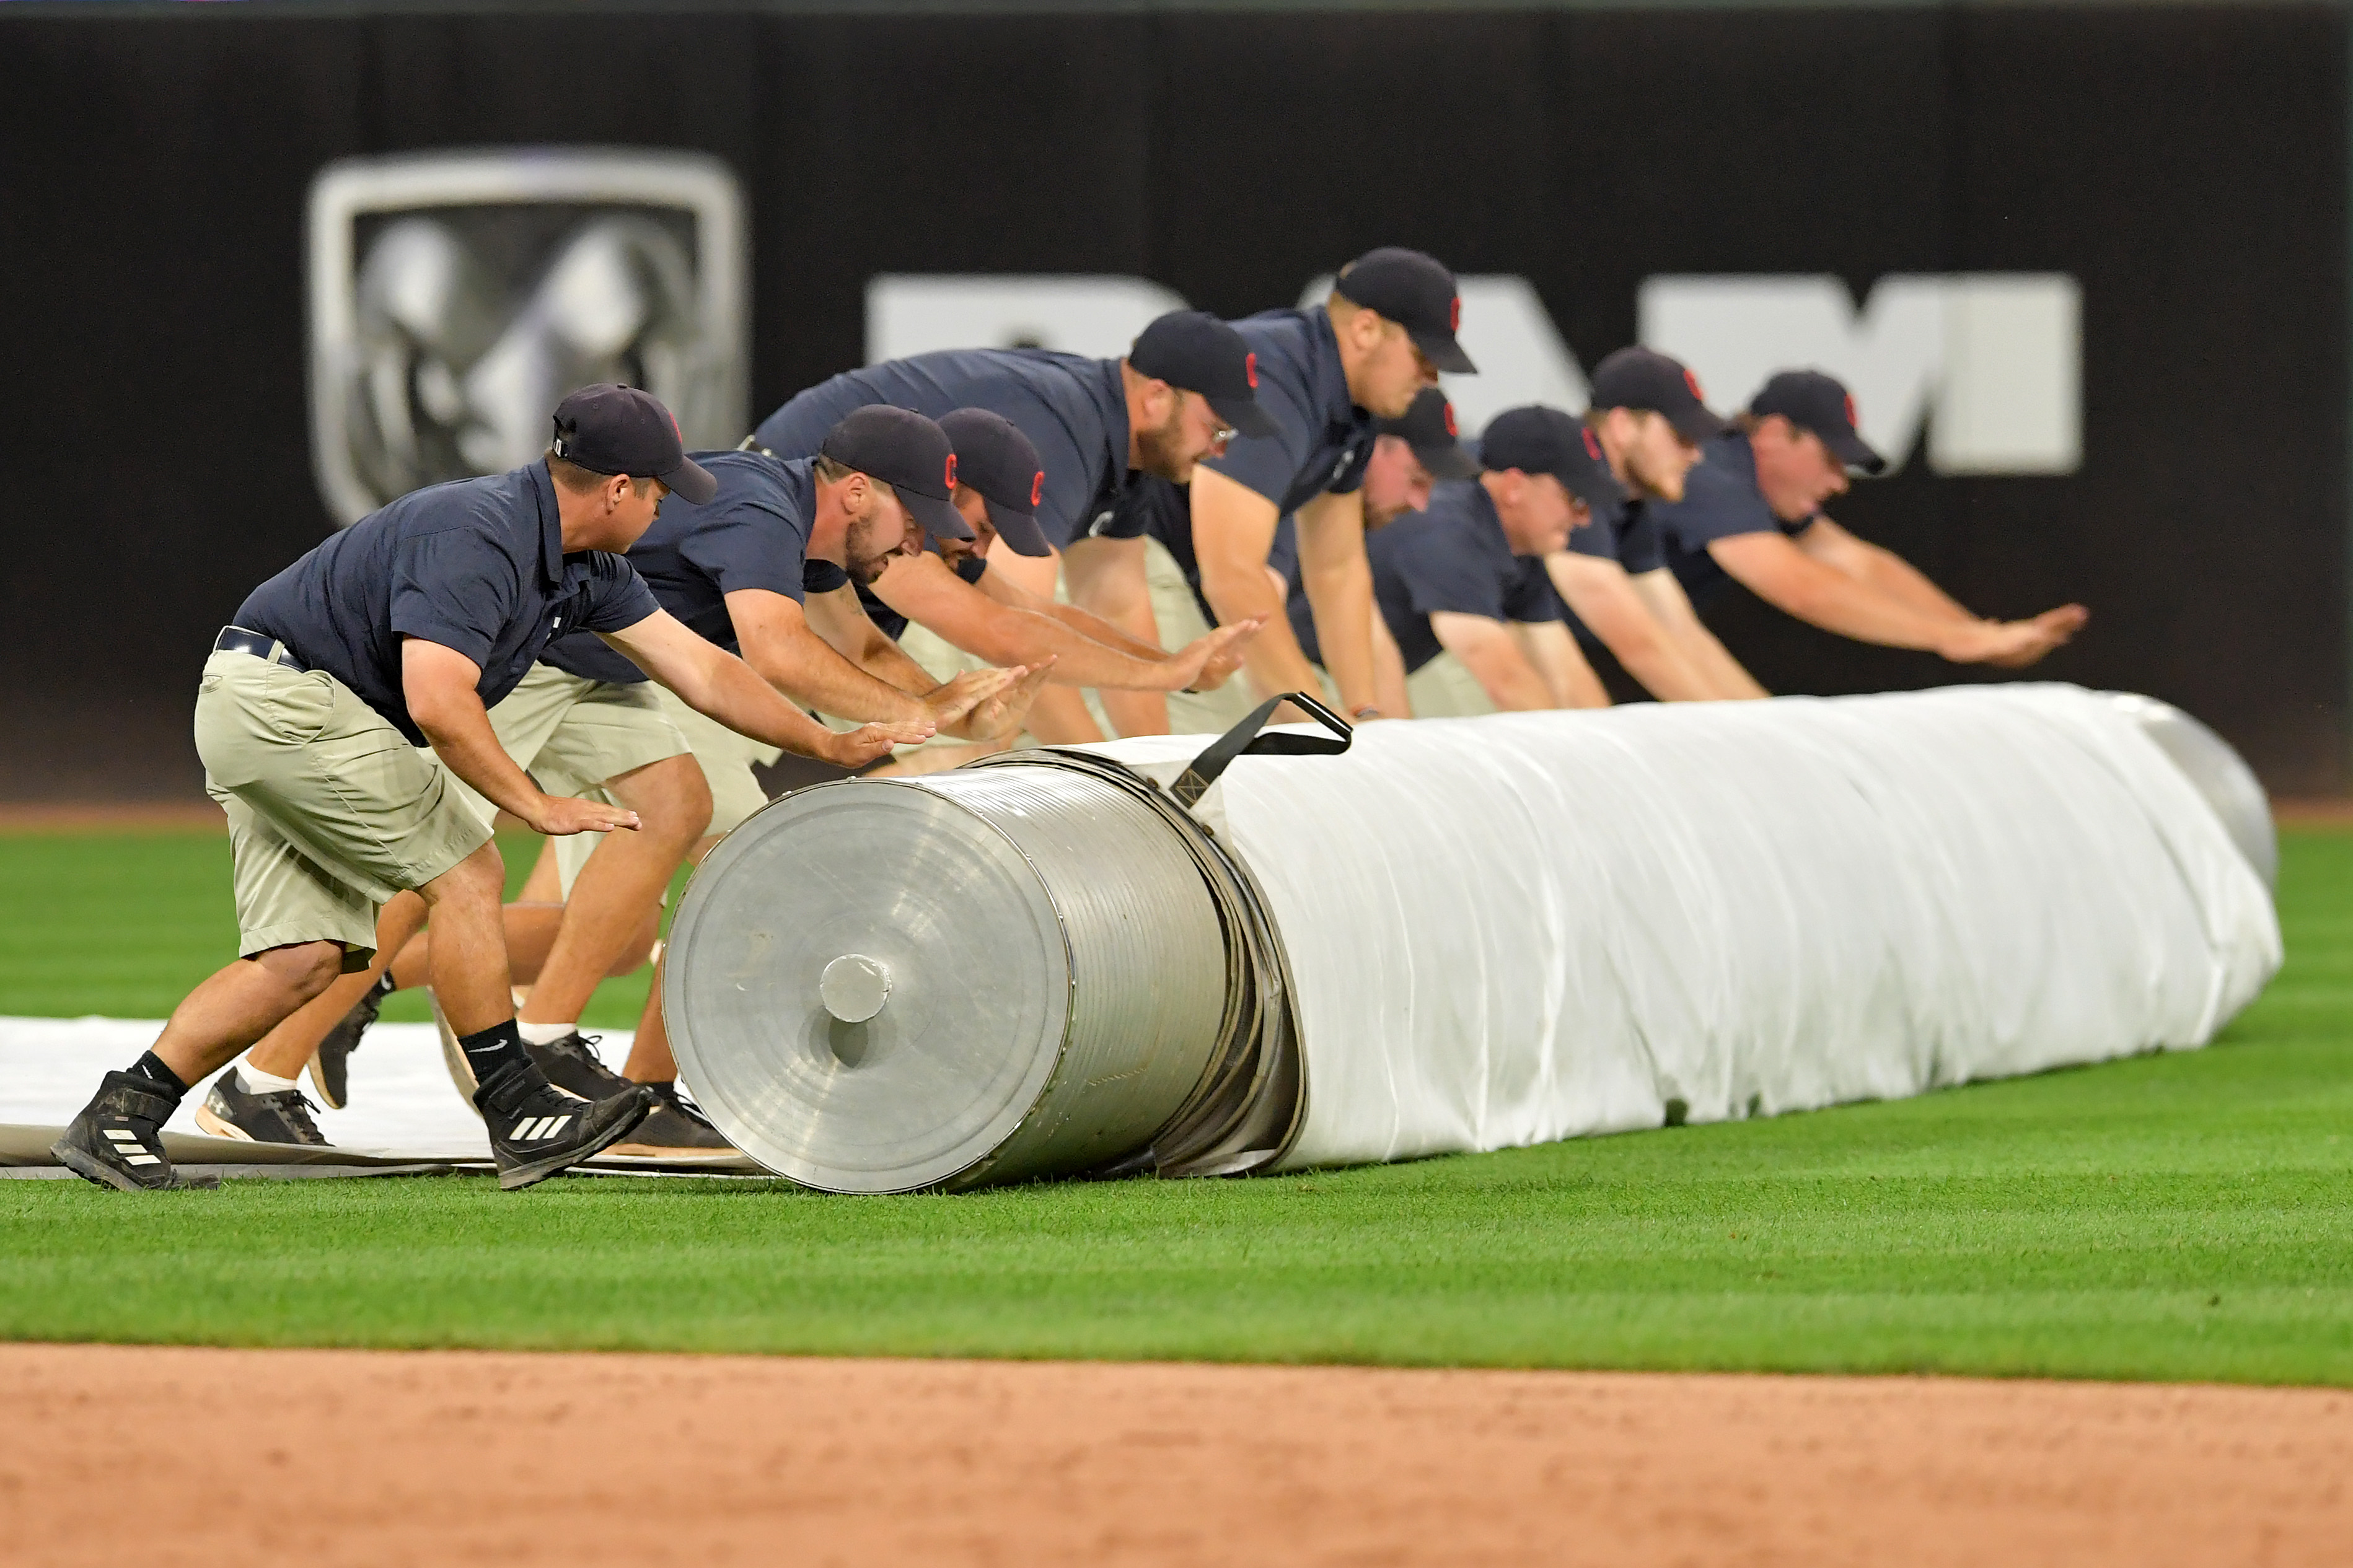 The Cleveland Indians grounds crew rolls out the tarp in preparation for a rain delay during the second inning of the game against the Minnesota Twins at Progressive Field on September 13, 2019 in Cleveland, Ohio.